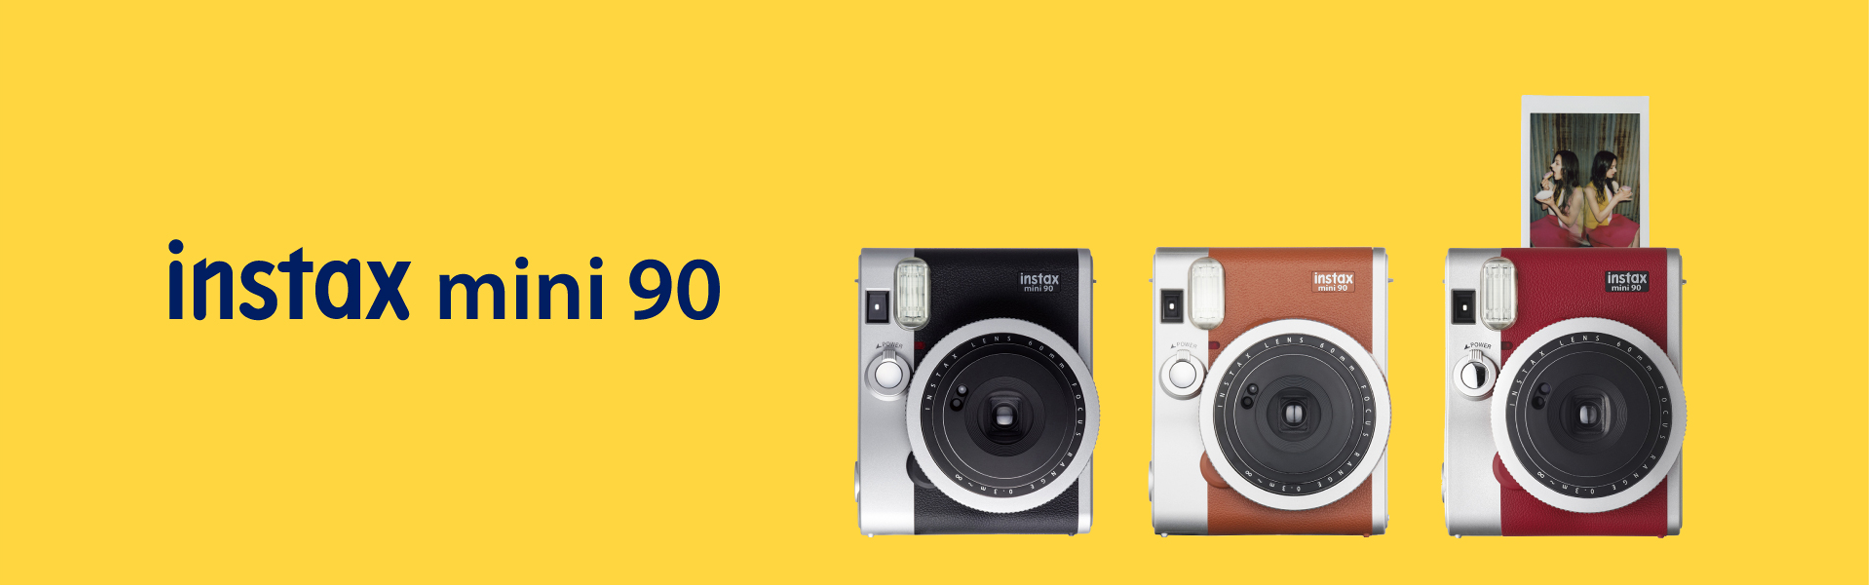 [photo] Yellow hero image with mini 90 cameras in different colors